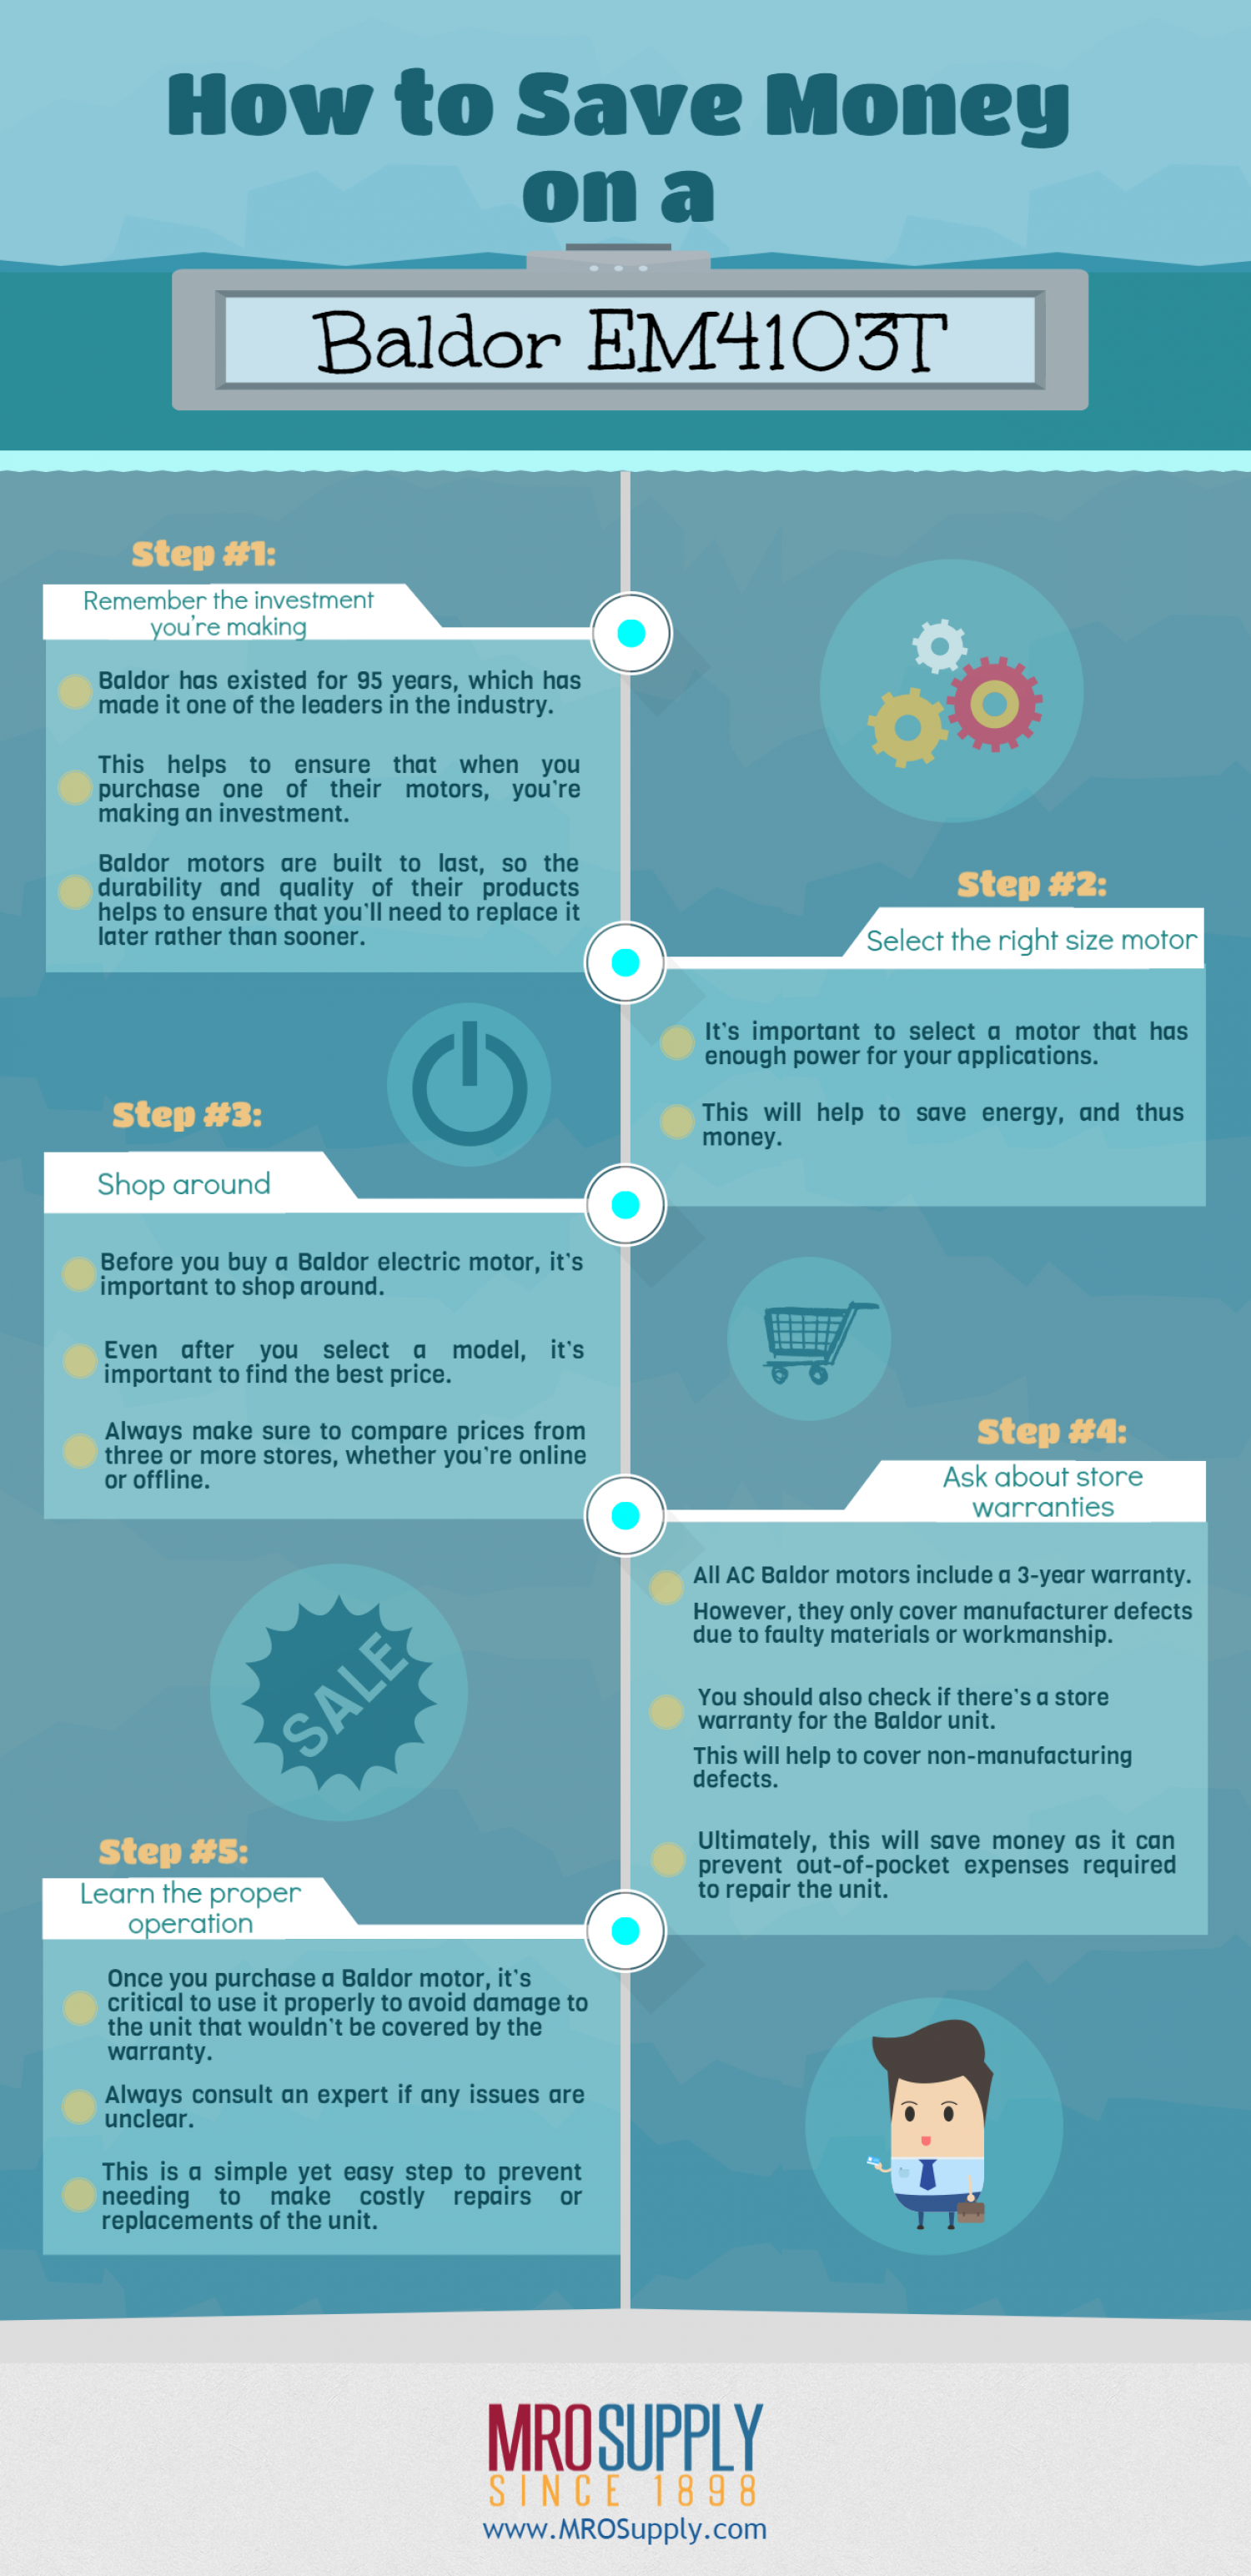 How To Save Money On A Baldor Em4103t Motors Infographic